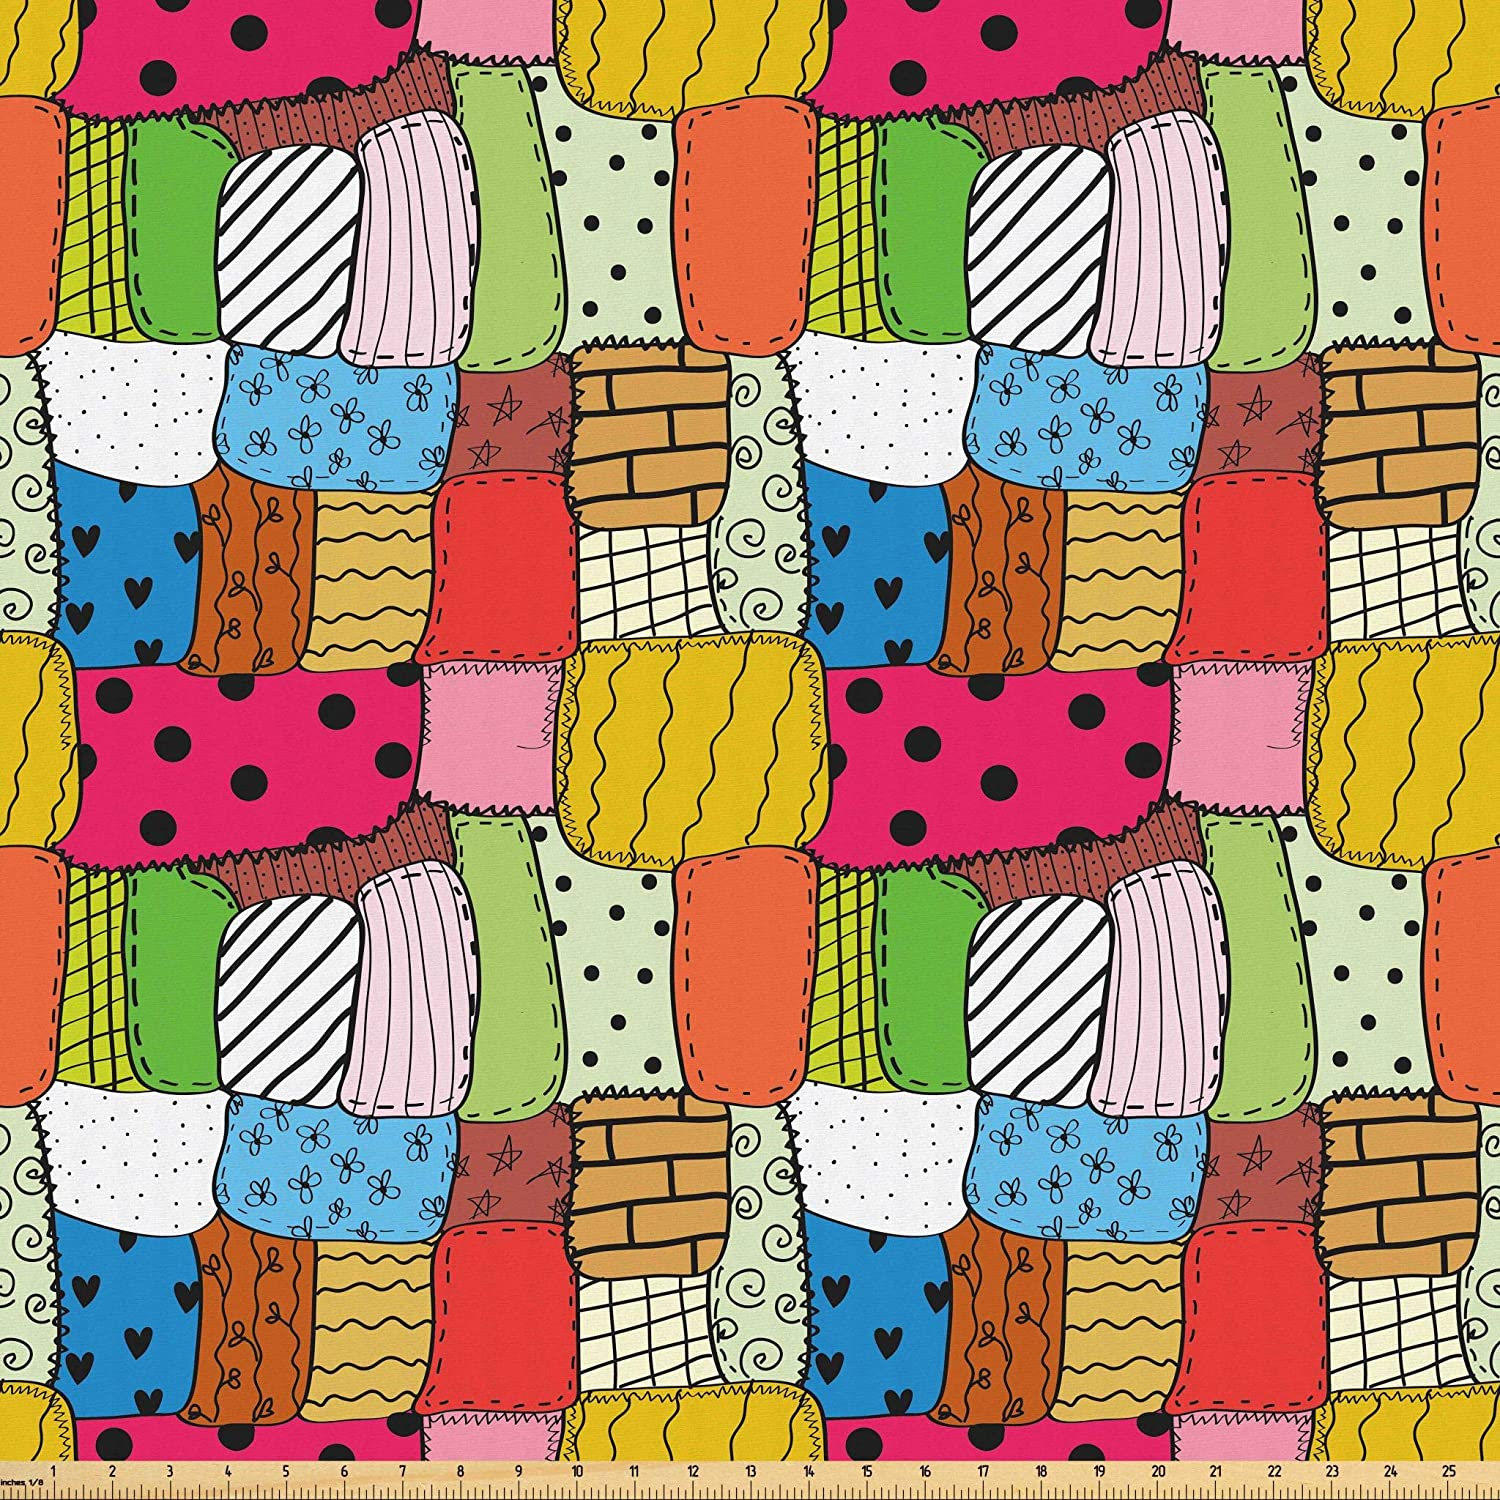 Lunarable Geometric Fabric by The Yard, Needlework Hobby Theme Lively Colored Quilt Pattern with Different Random Pieces, Microfiber Fabric for Arts and Crafts Textiles & Decor, 1 Yard, Multicolor